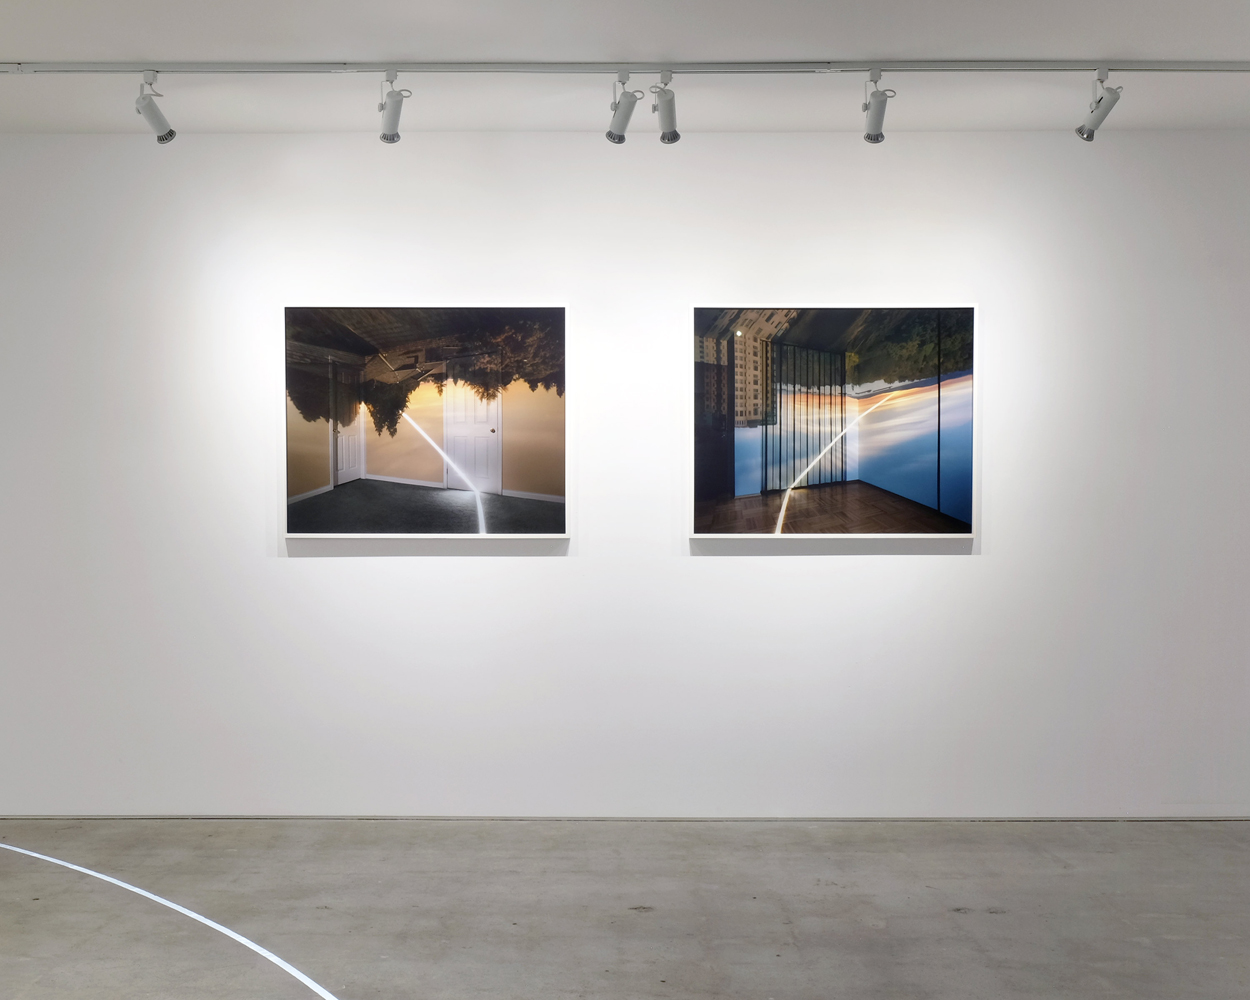 From Sunrise & To Sunset, 2016 Exhibition View Each 32 x 40 inches